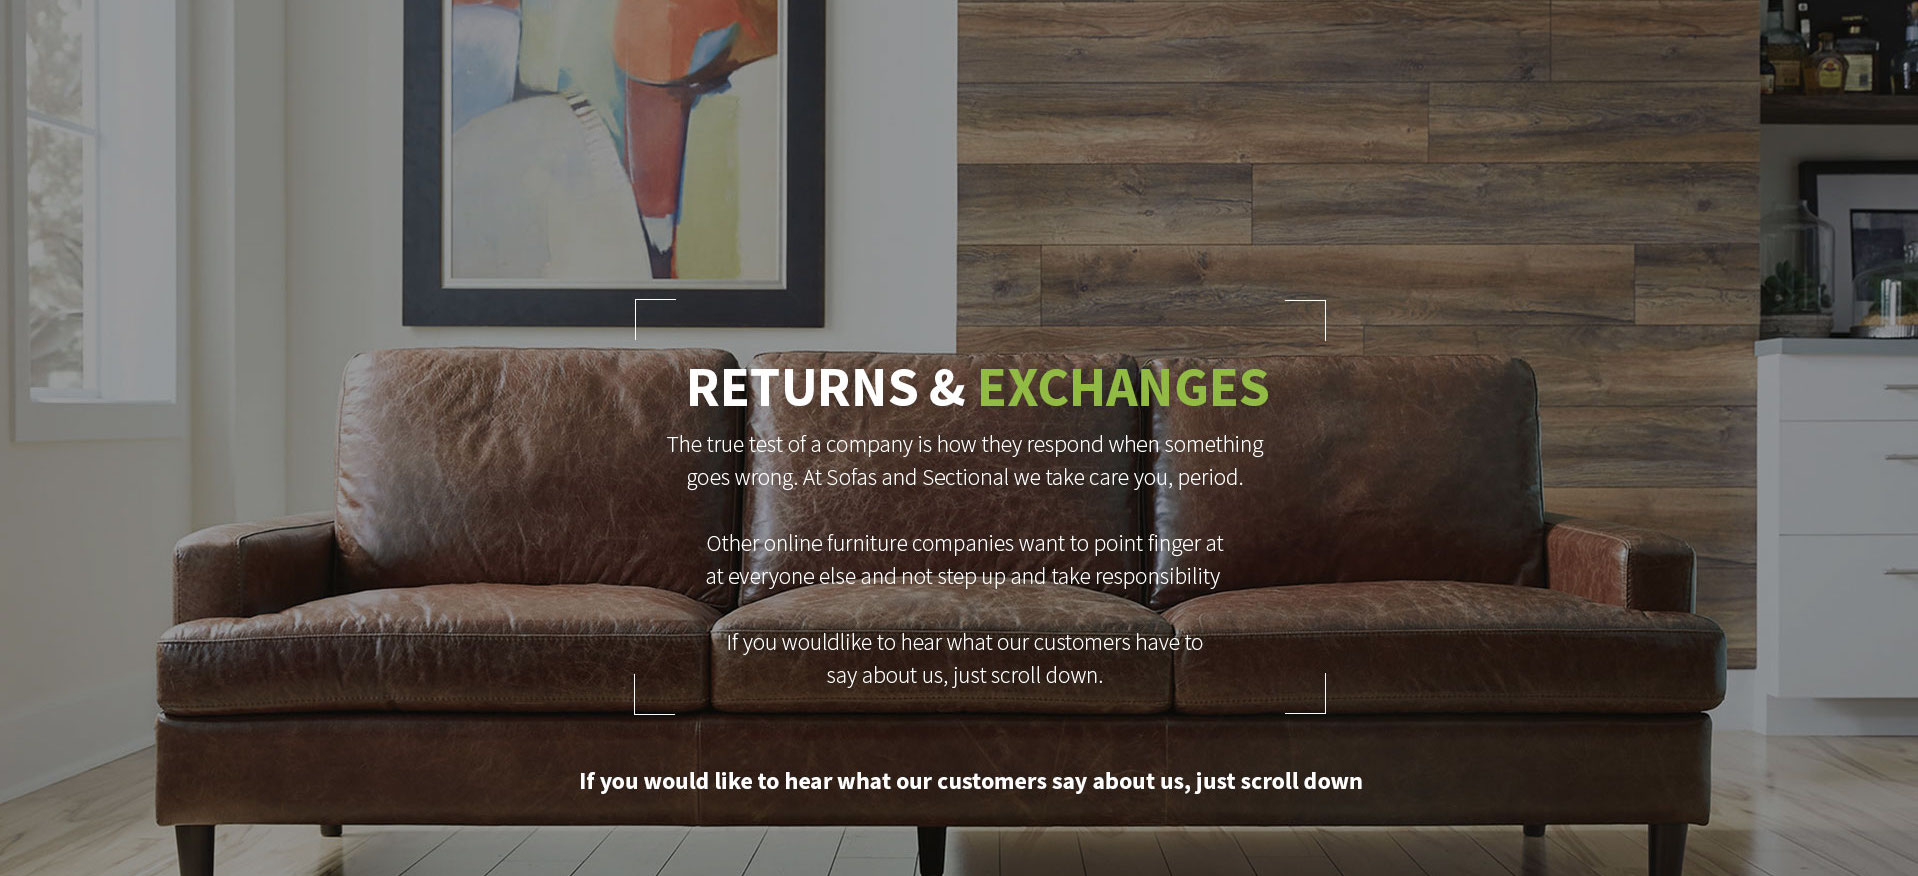 Return Policy Sofas and Sectionals